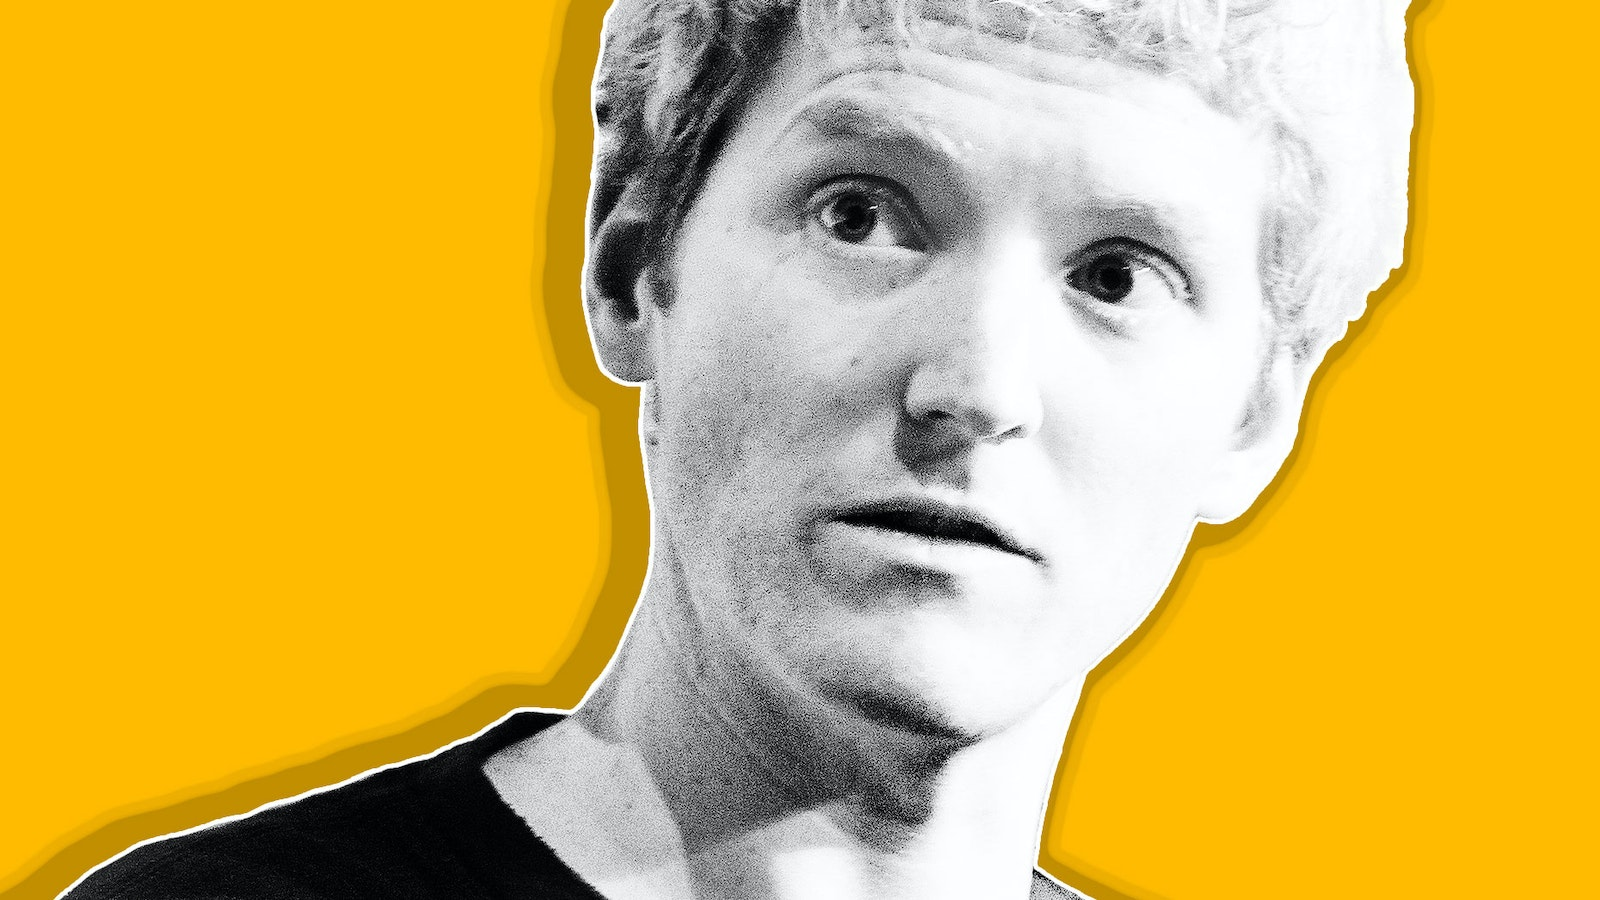 Patrick Collison. Illustration by Mike Sullivan.